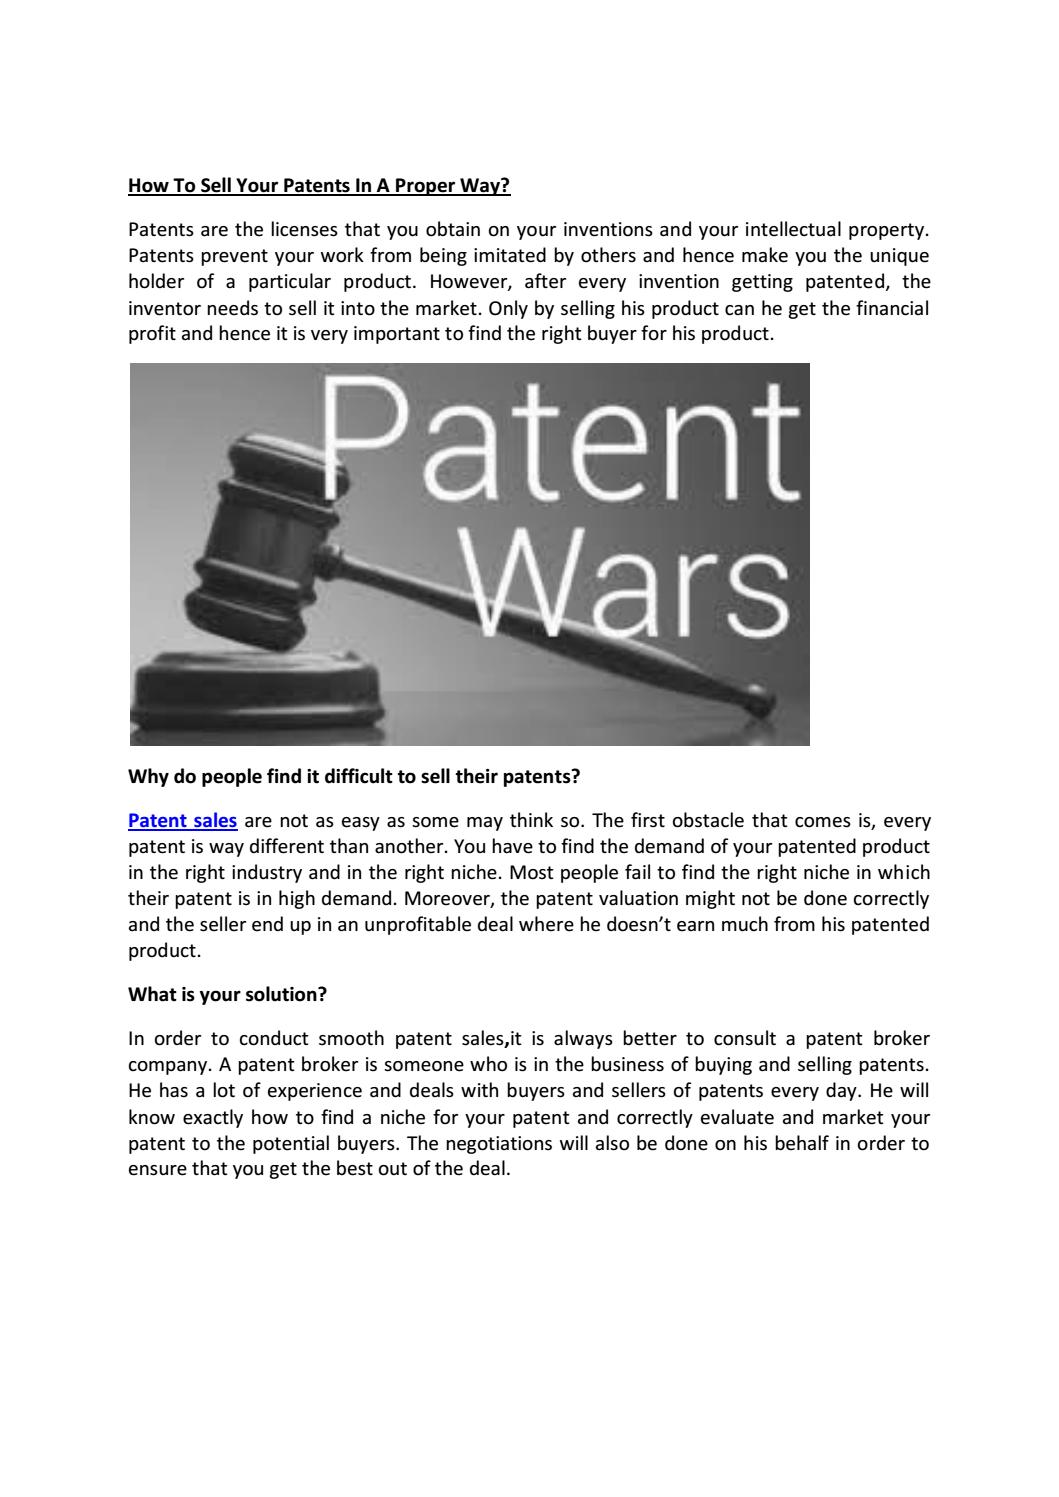 How to Sell a Patent recommendations